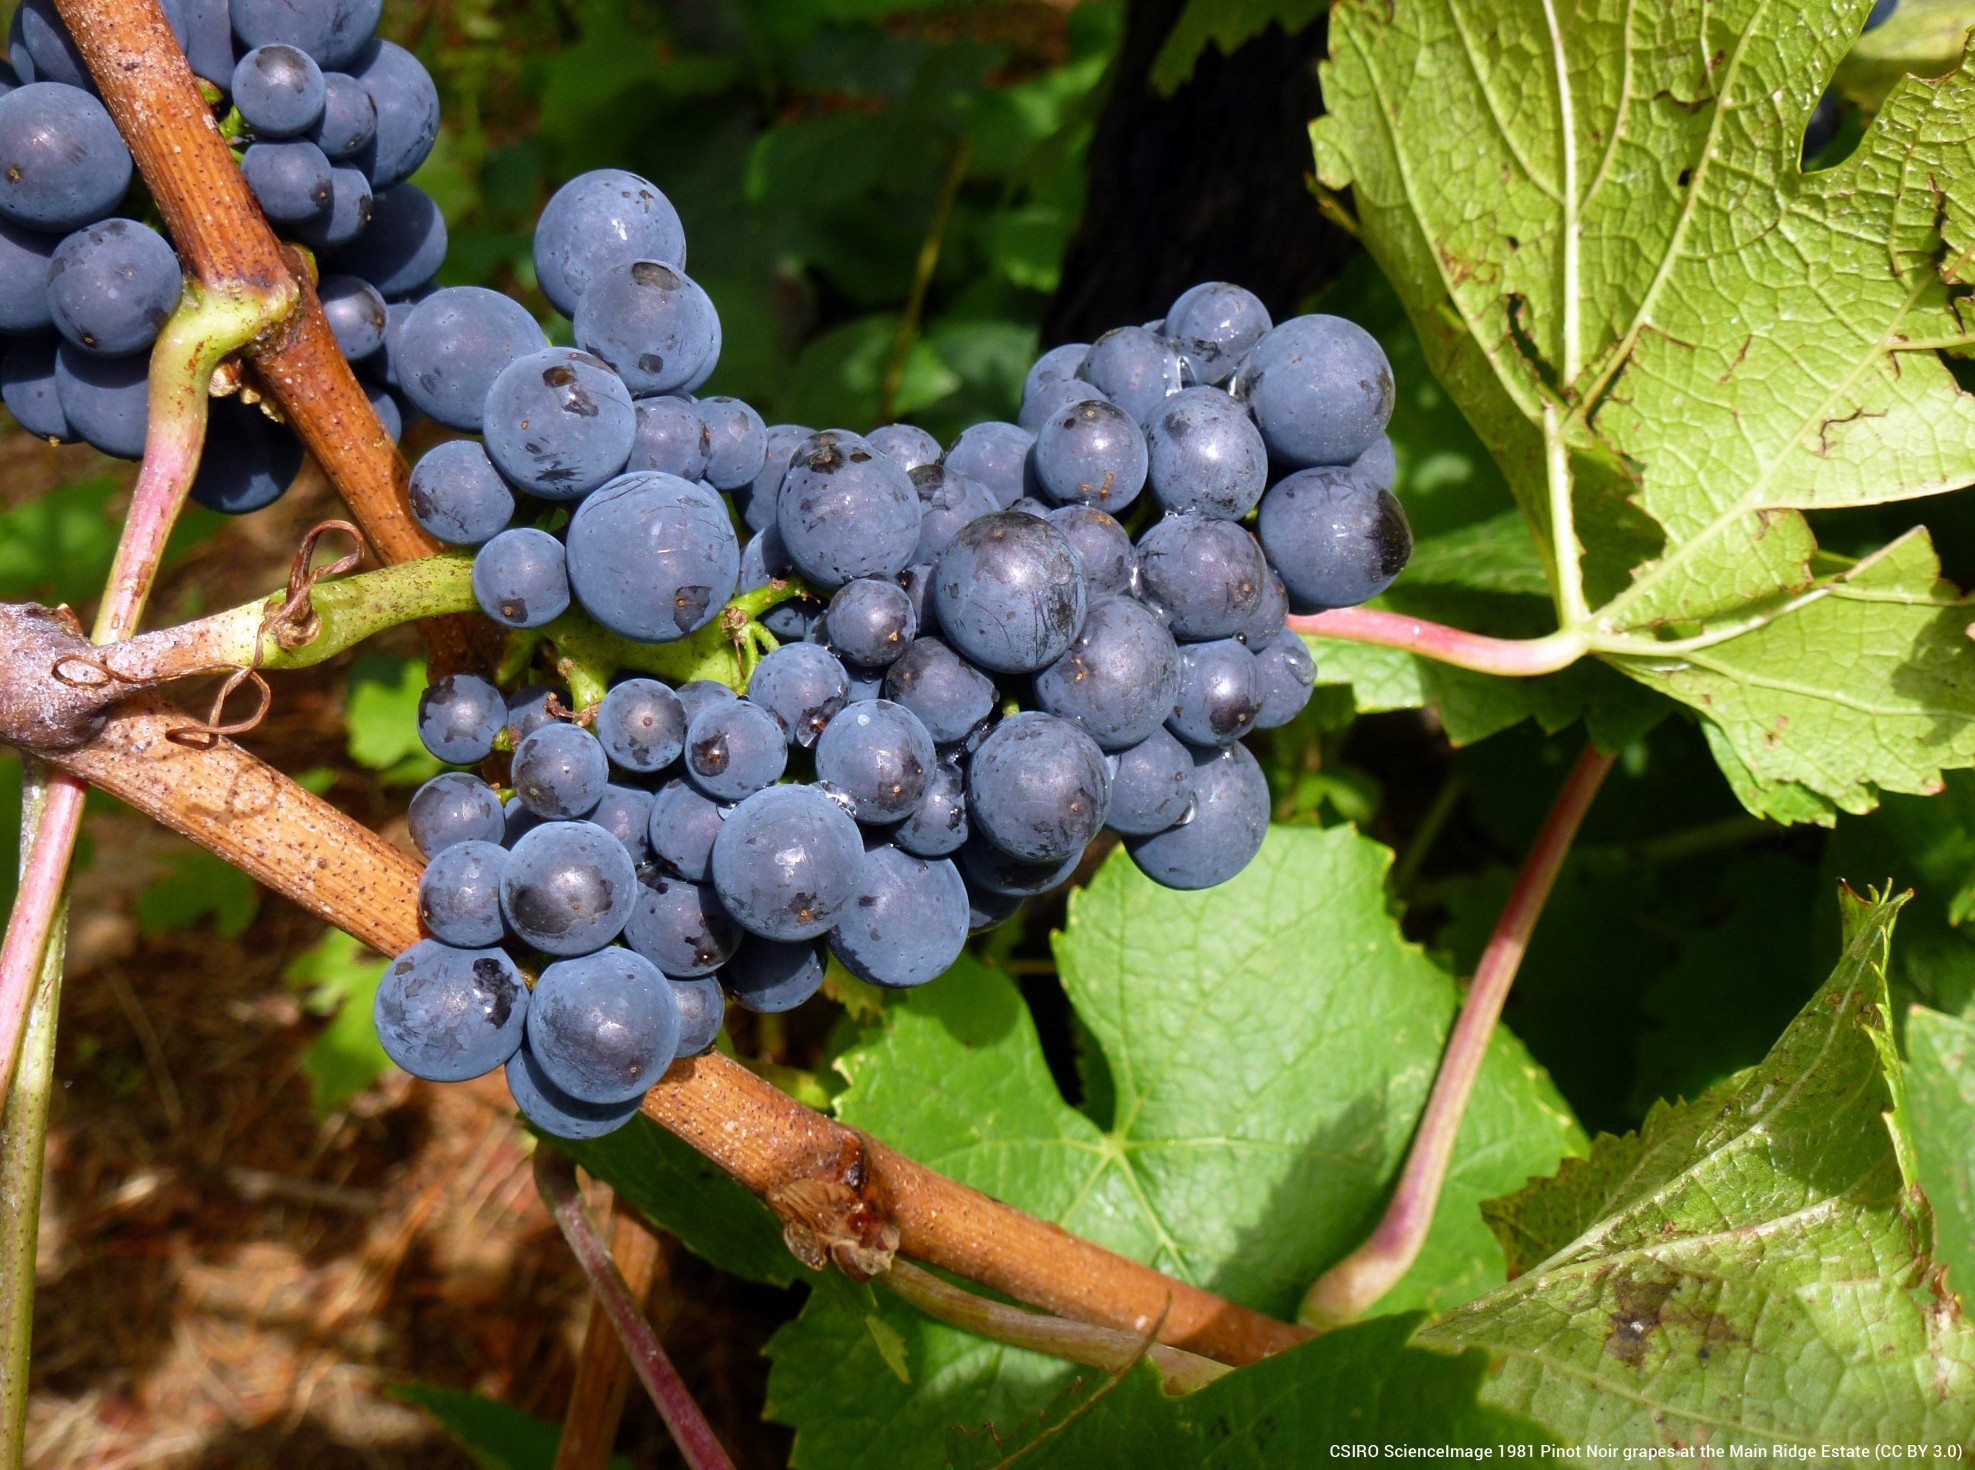 CSIRO ScienceImage Pinot Noir Grapes